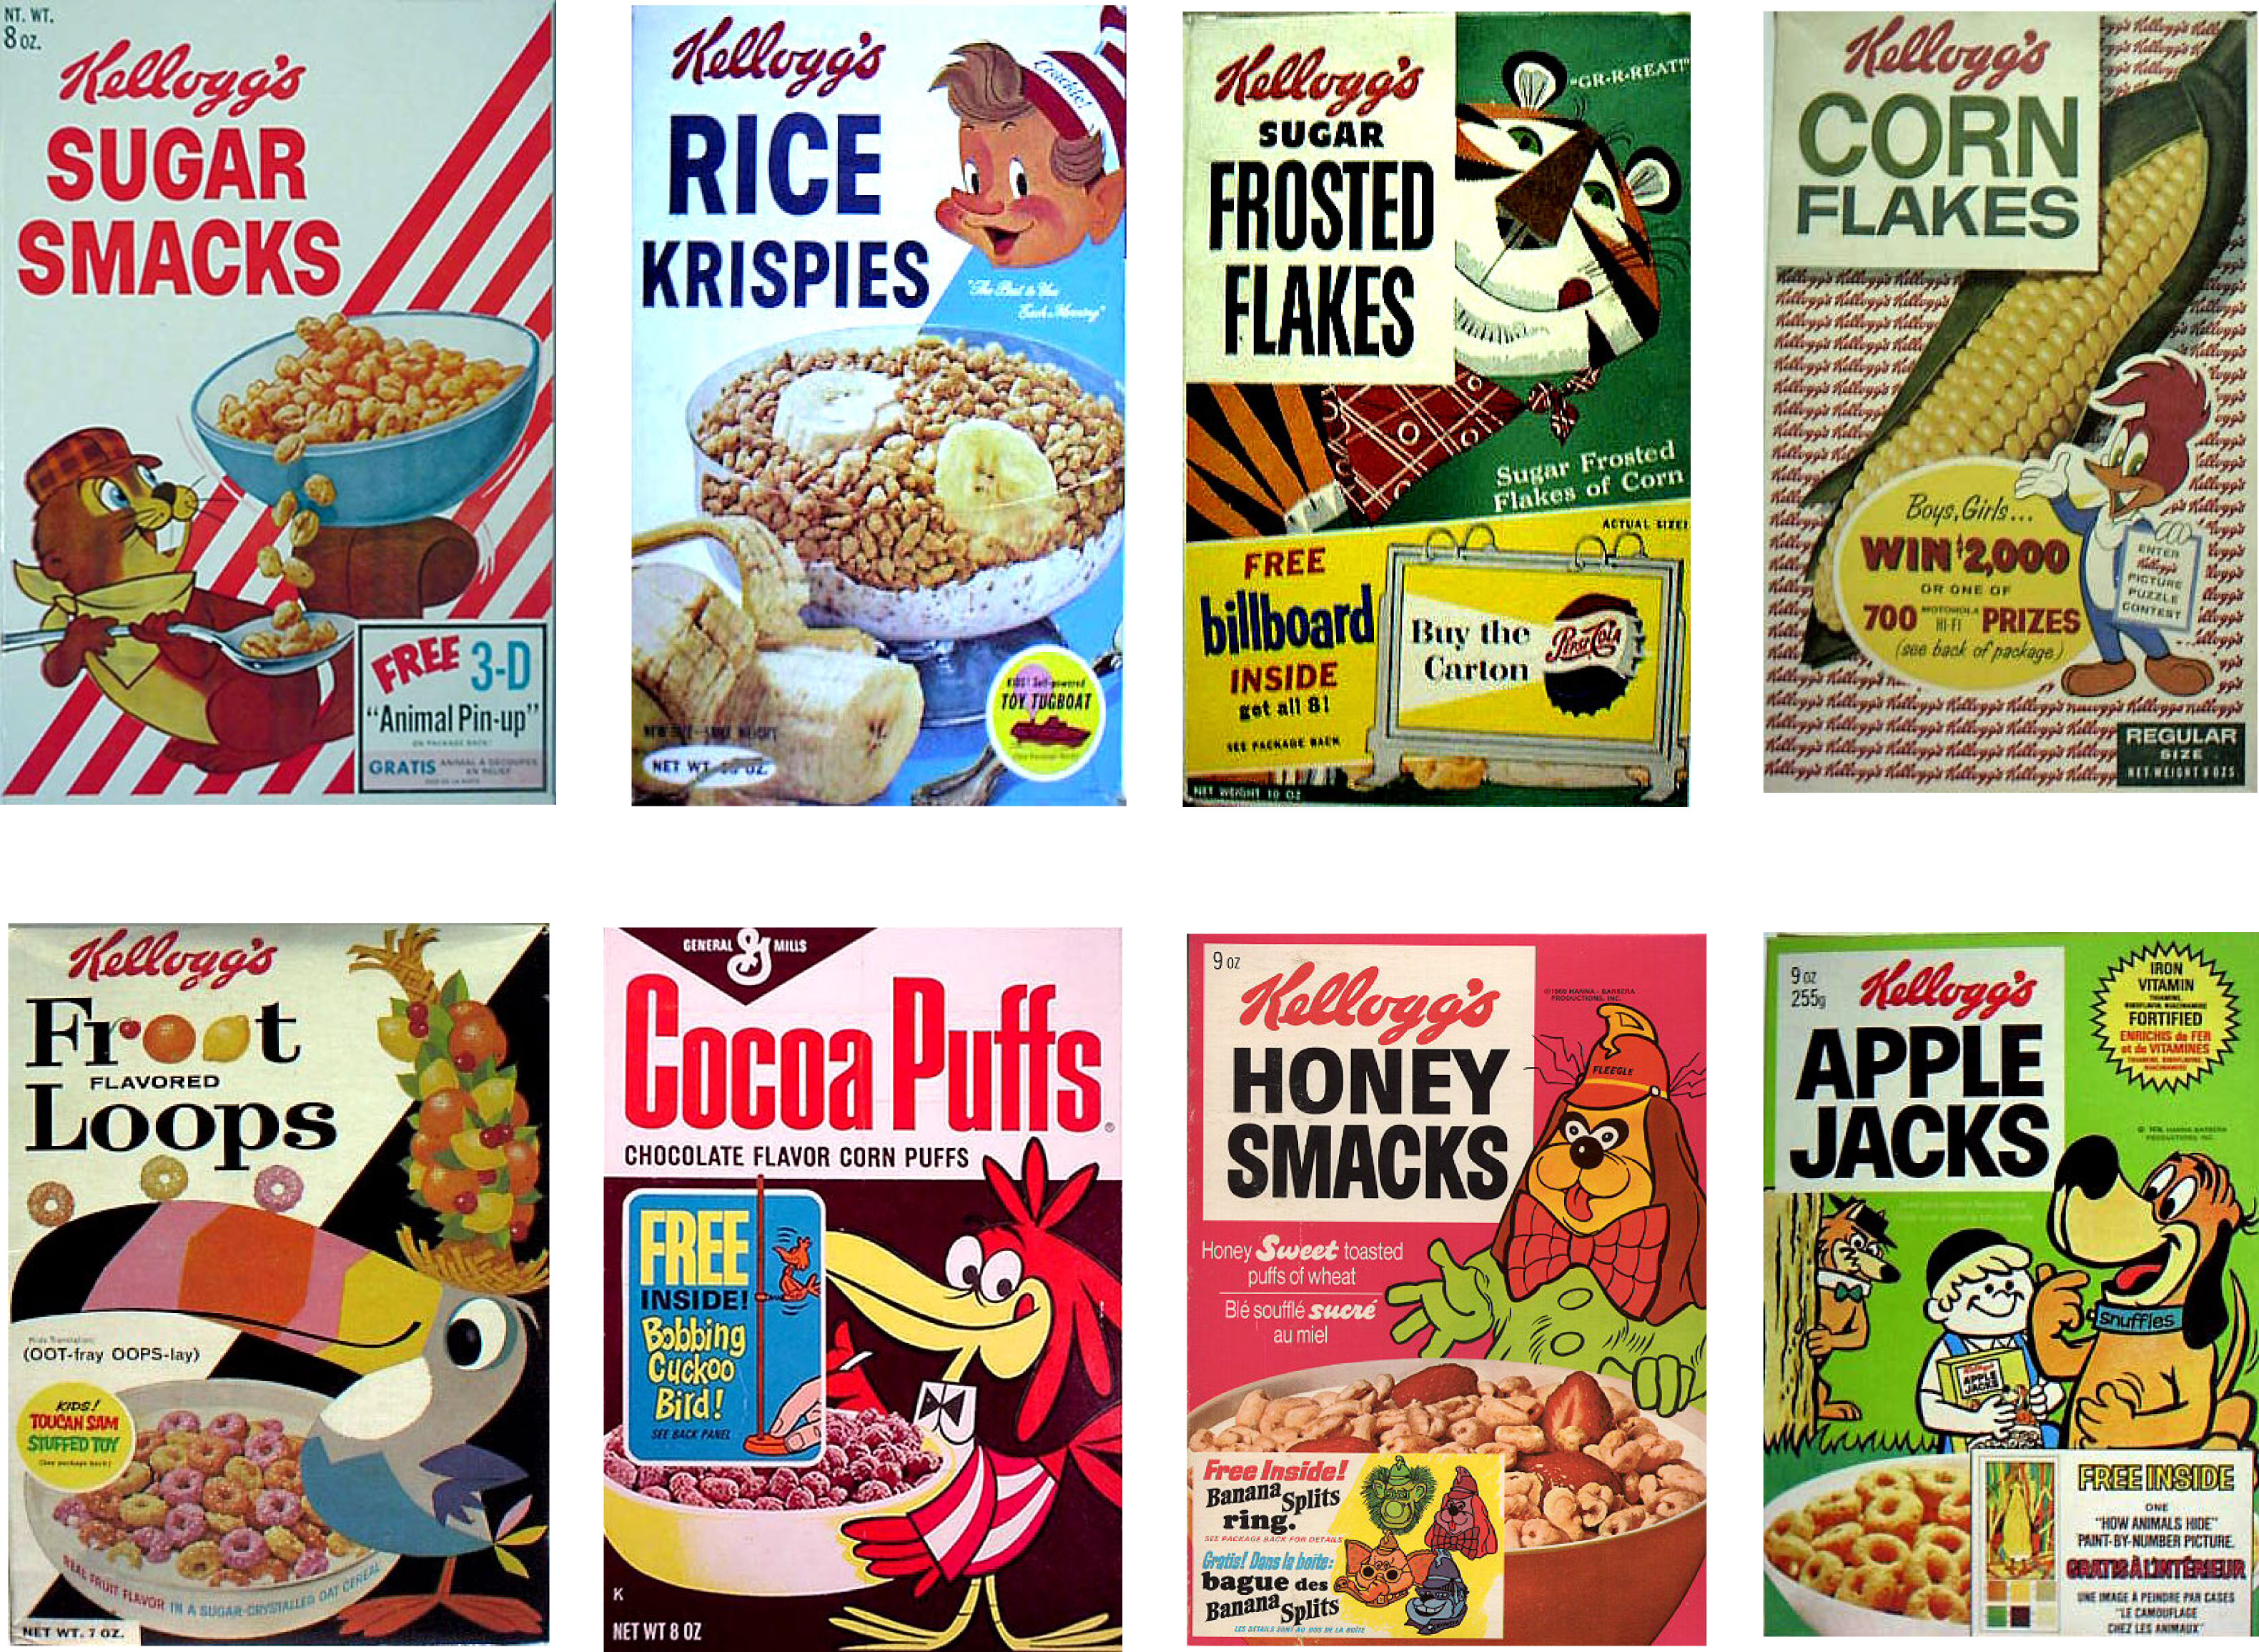 Breakfast Cereal And The Breakfast Food Market Stealing Share